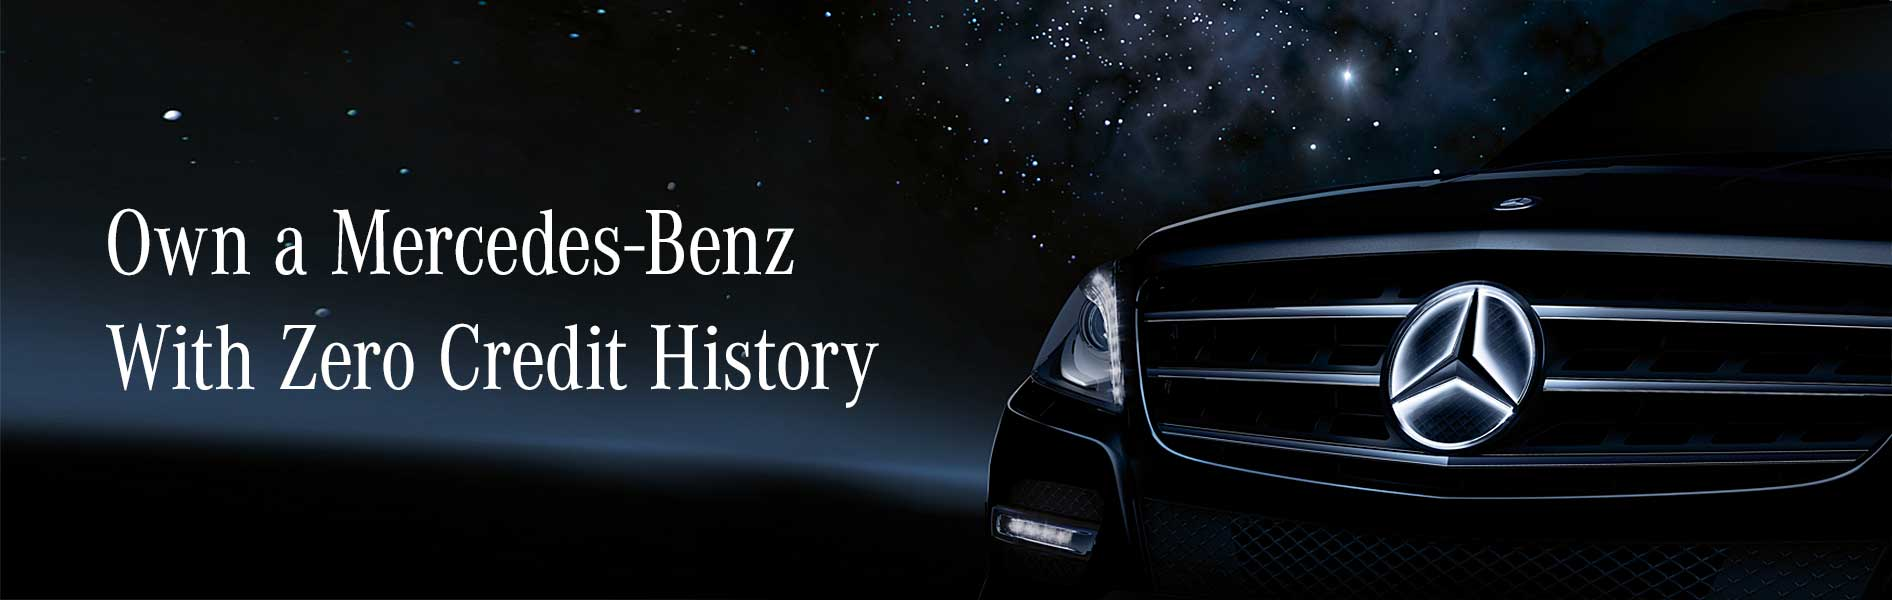 Own a Mercedes-Benz With Zero Credit History